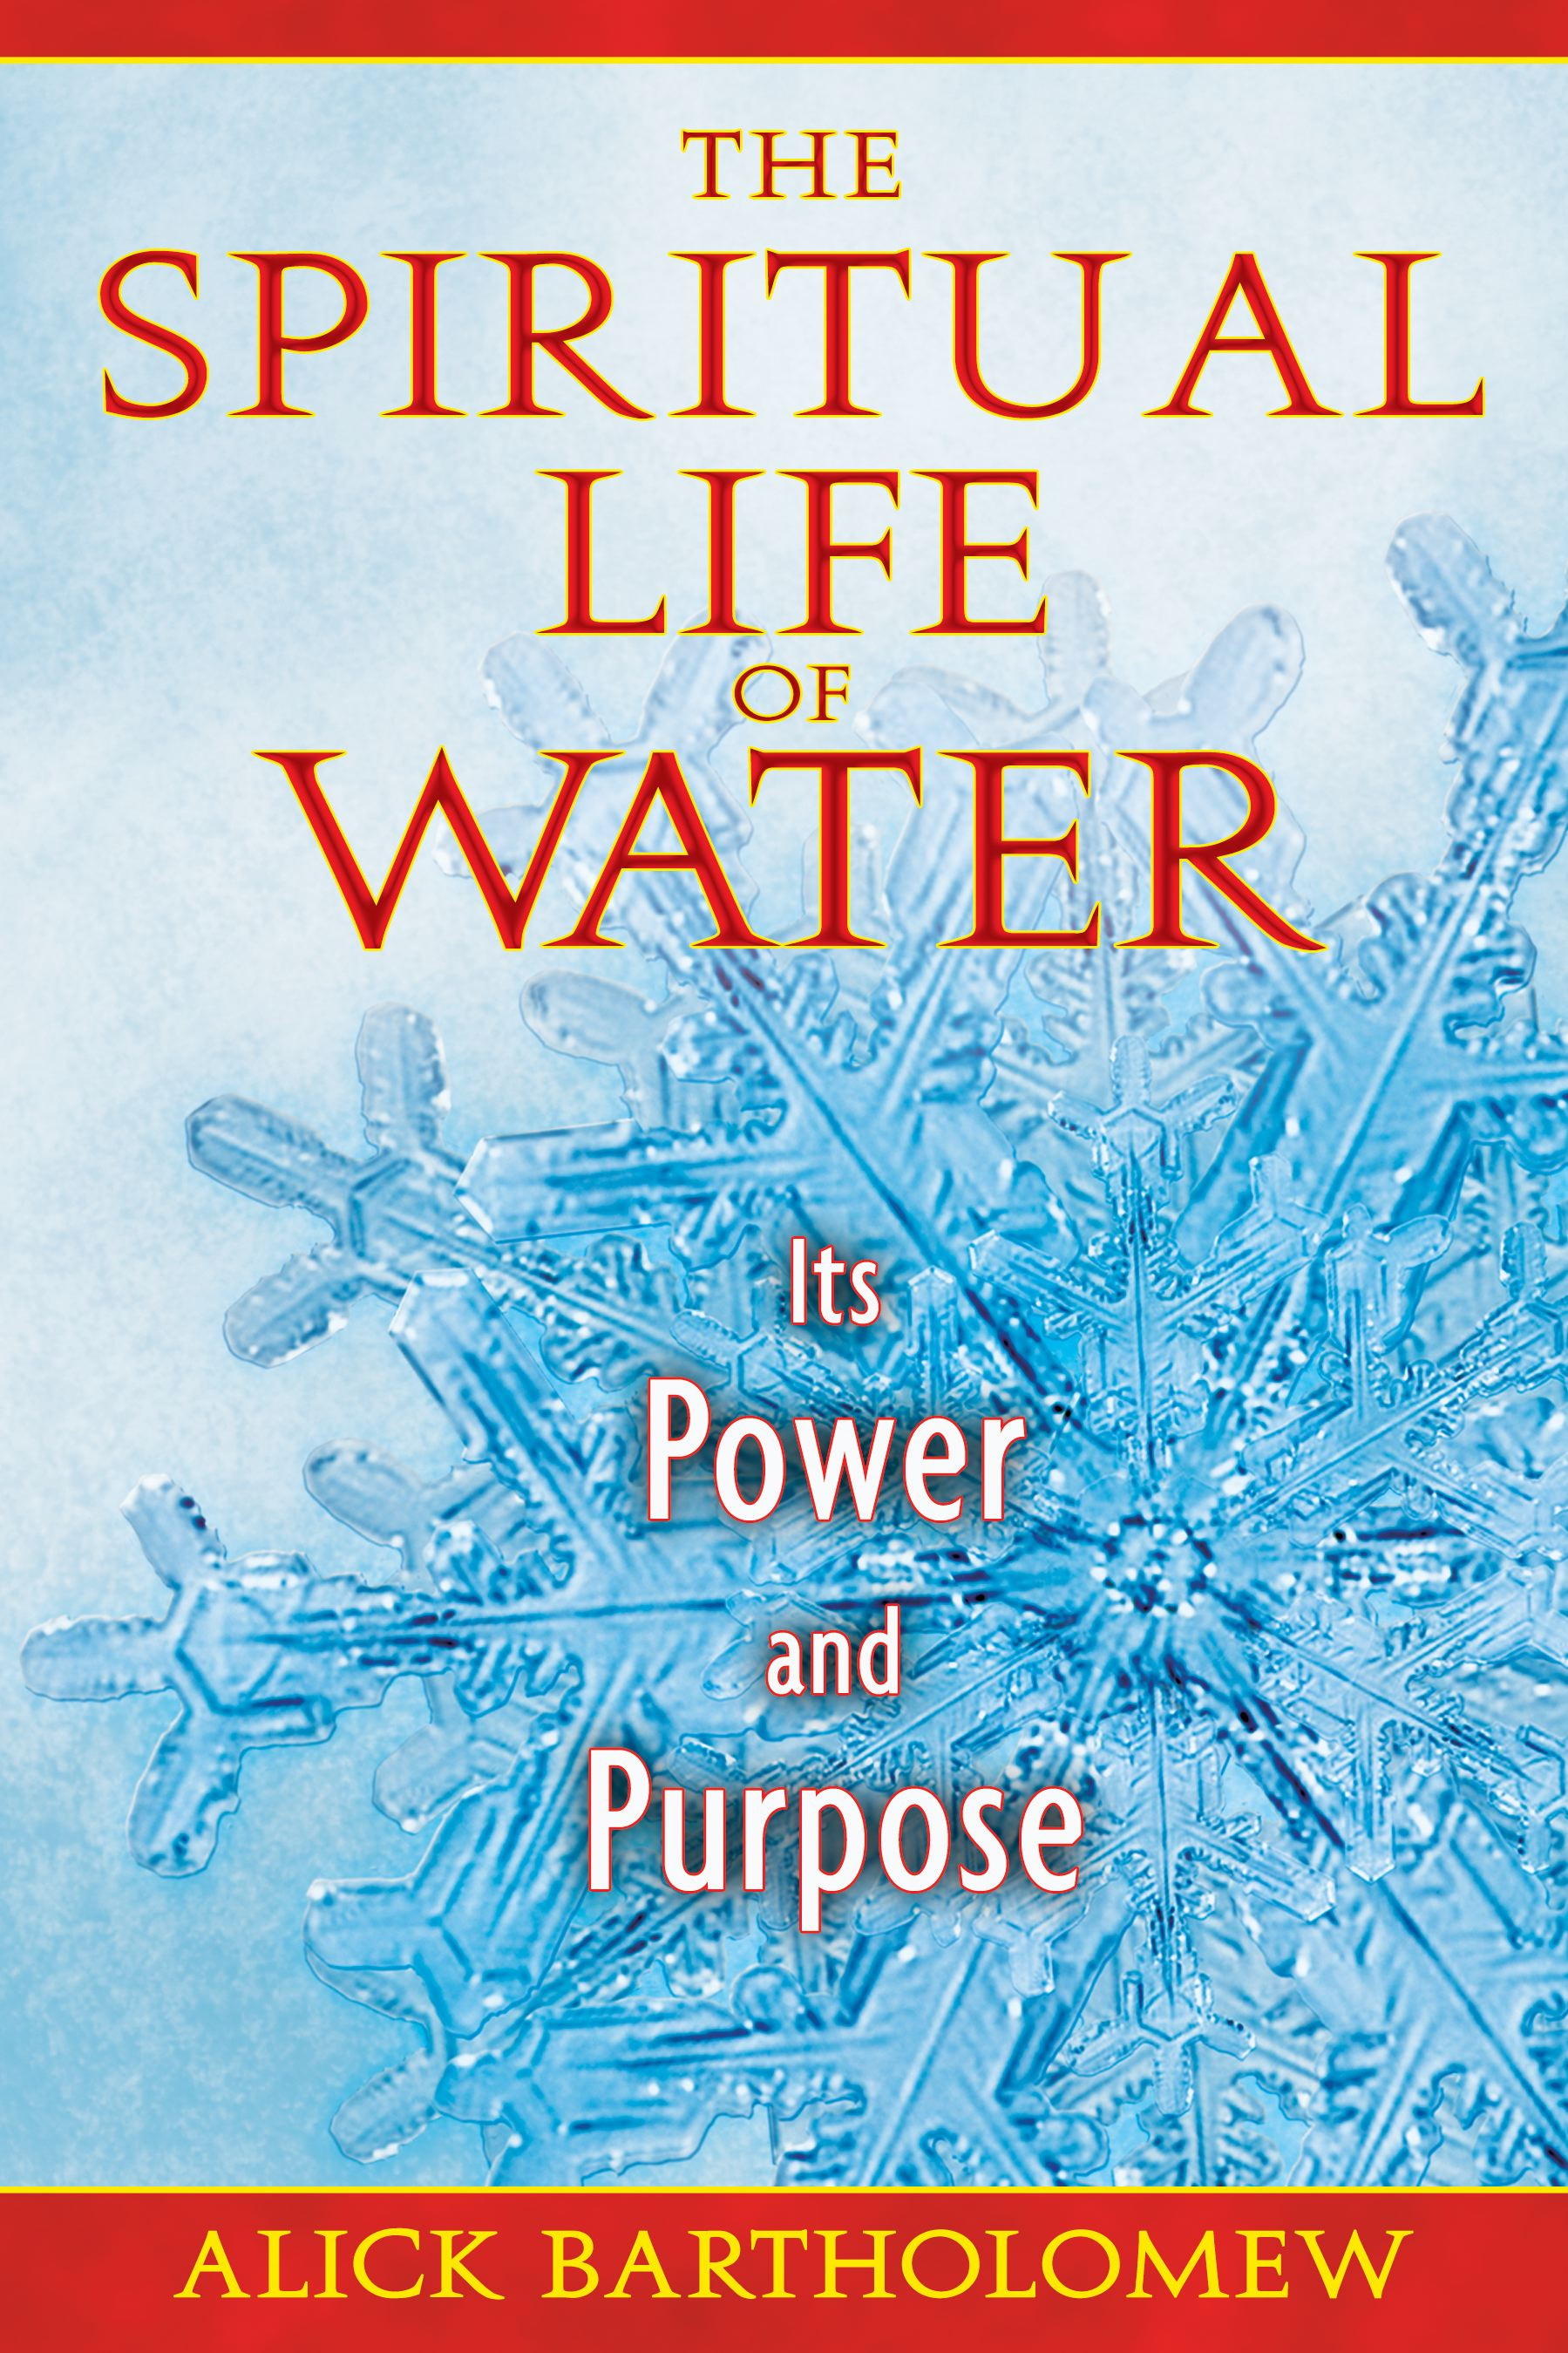 The spiritual life of water 9781594773600 hr